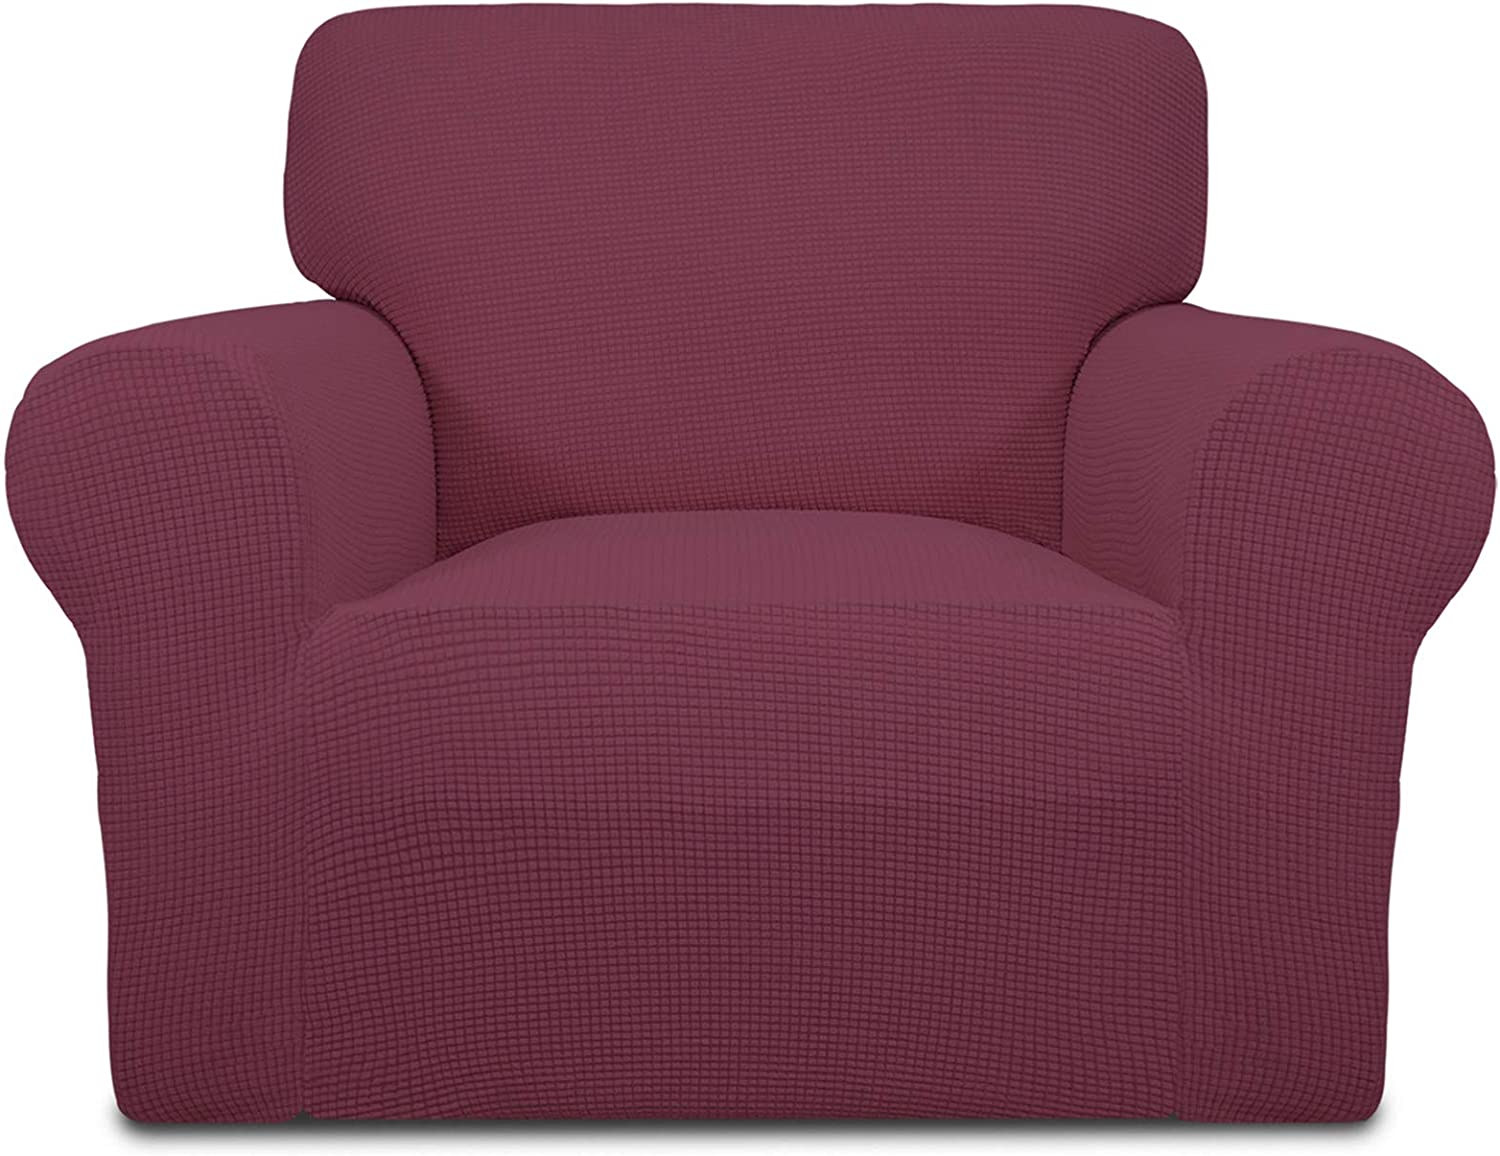 Easy-Going Stretch Chair Sofa Slipcover 1-Piece Couch Sofa Cover Furniture Protector Soft with Elastic Bottom for Kids Spandex Jacquard Fabric Small Checks(Chair, ASH Rose)